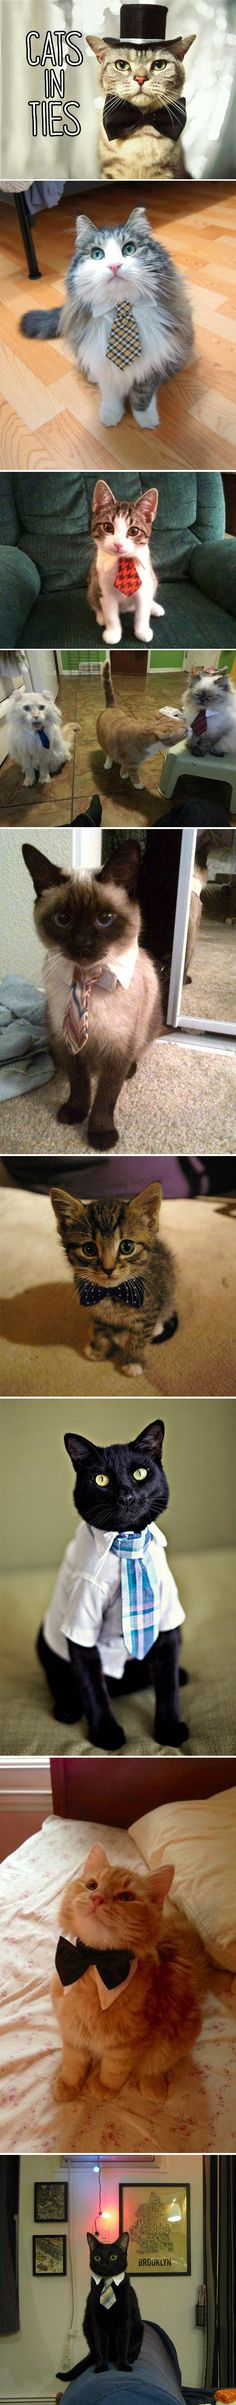 cats.in ties.my work here is done.